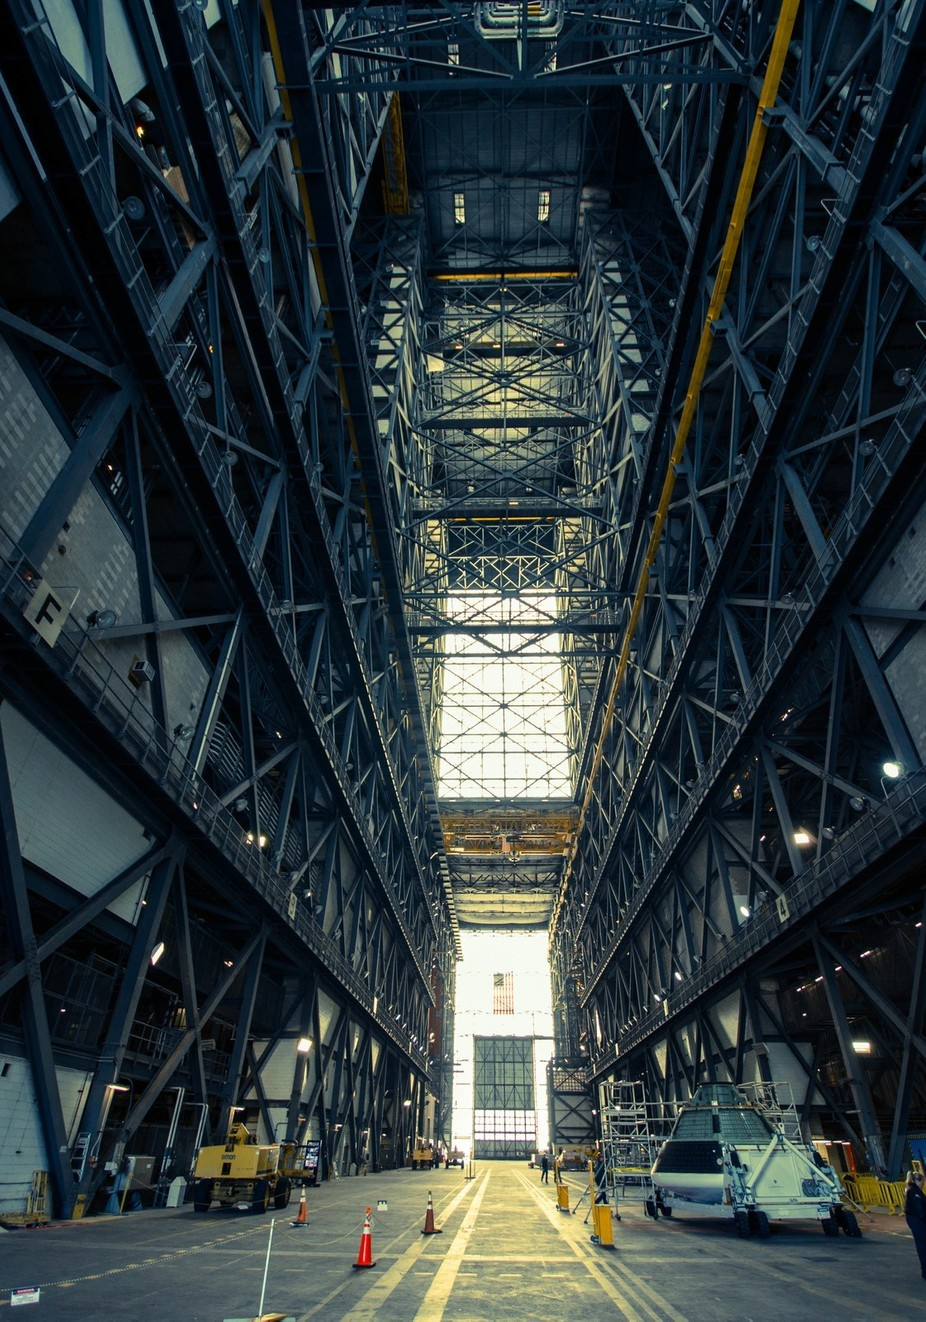 Vehicle Assembly Building - NASA by JamieScottPhotography - Industry Photo Contest